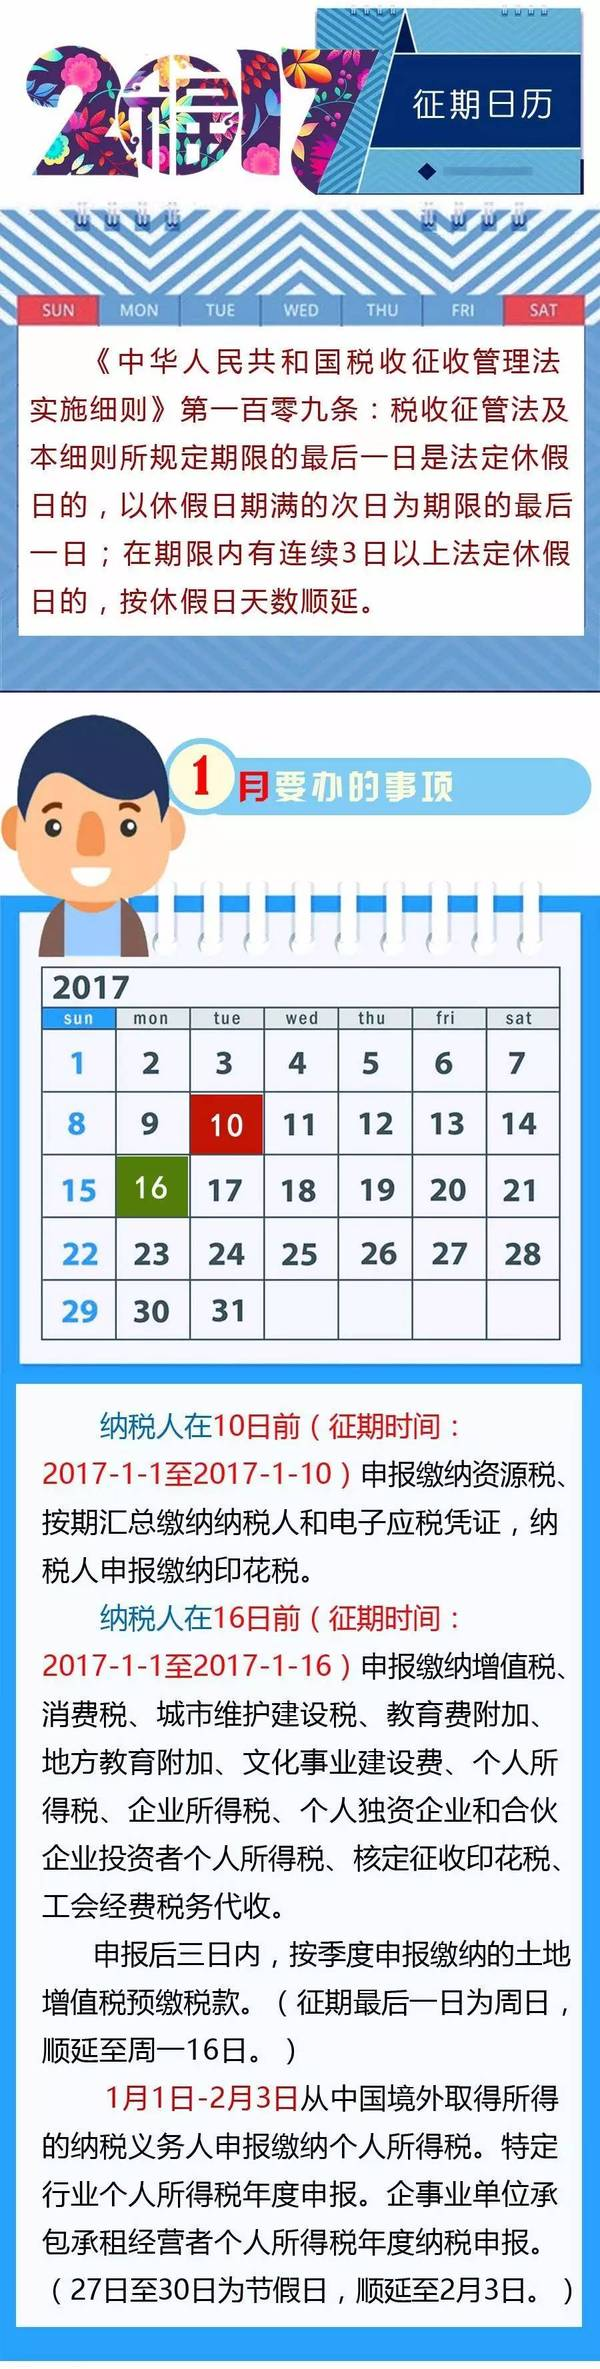 2017-tax-collection-calendar-01